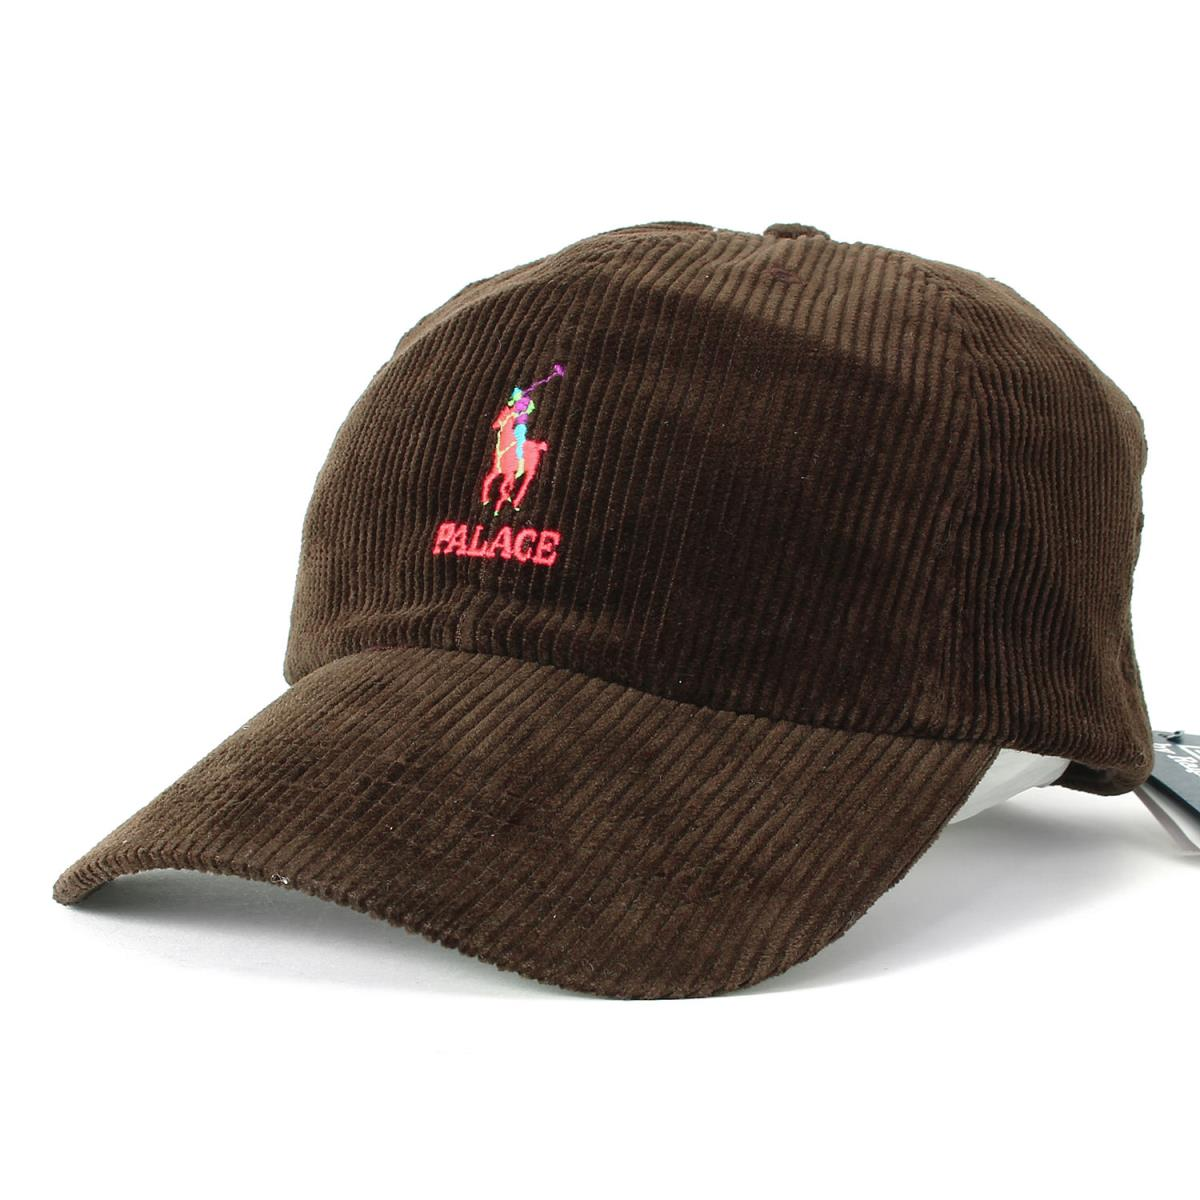 7d50b1ae6120fc PALACE (palace) 18A/W X POLO RALPH LAUREN corduroy classical music cap  (CLASSIC ...